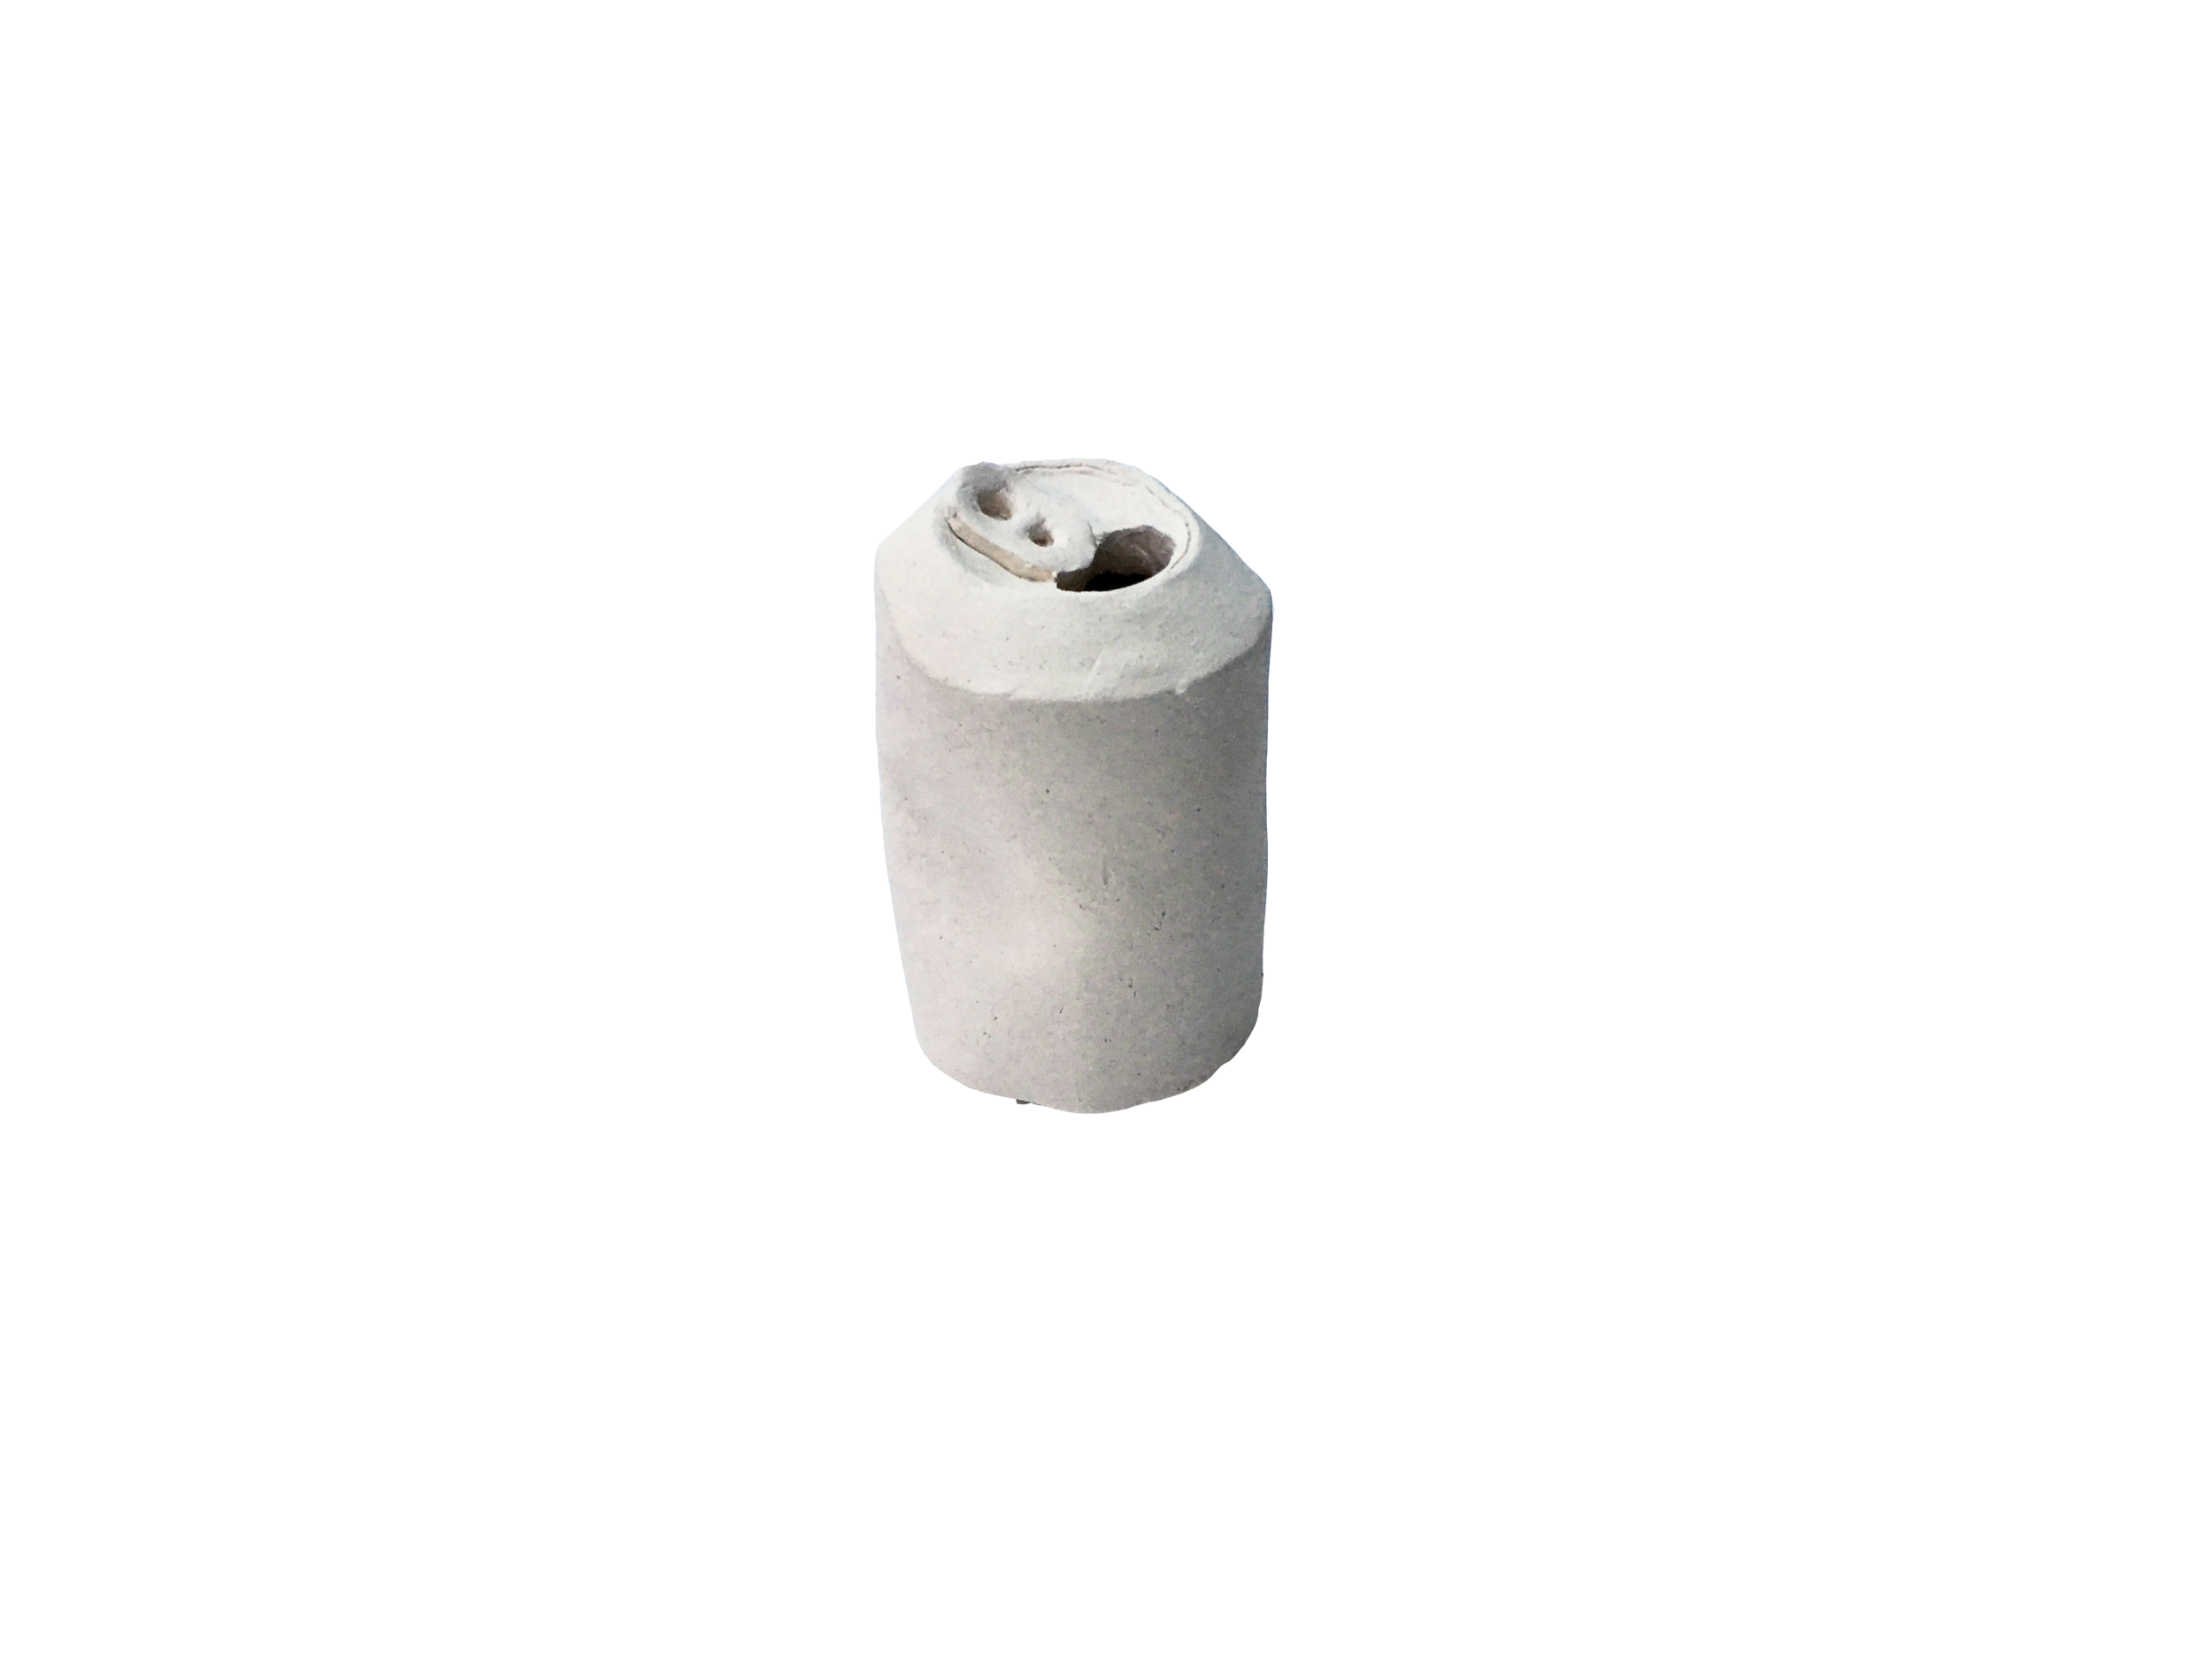 soda can_Forward Union_12_2_17_S.D.png